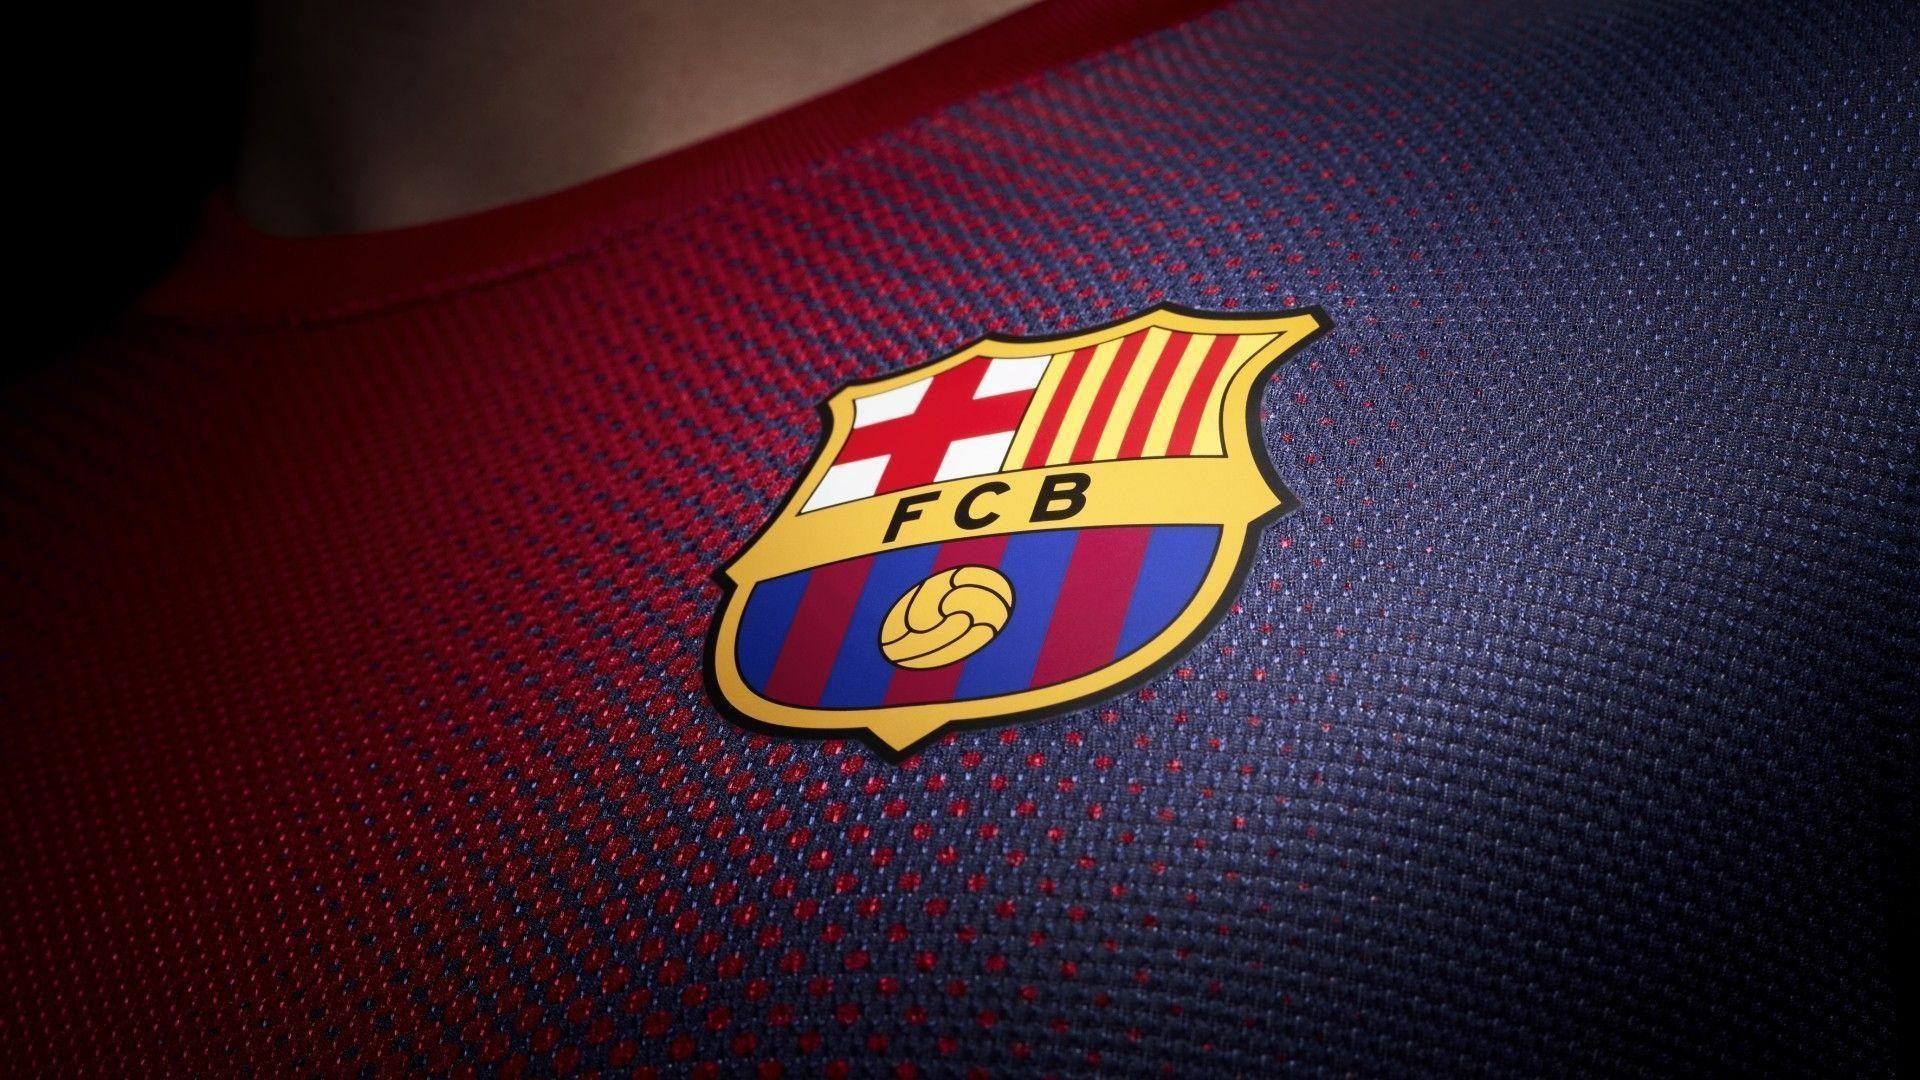 1920x1080 Sport: FC Barcelona Kit 2013 Football Wallpapers HD, fc barcelona .